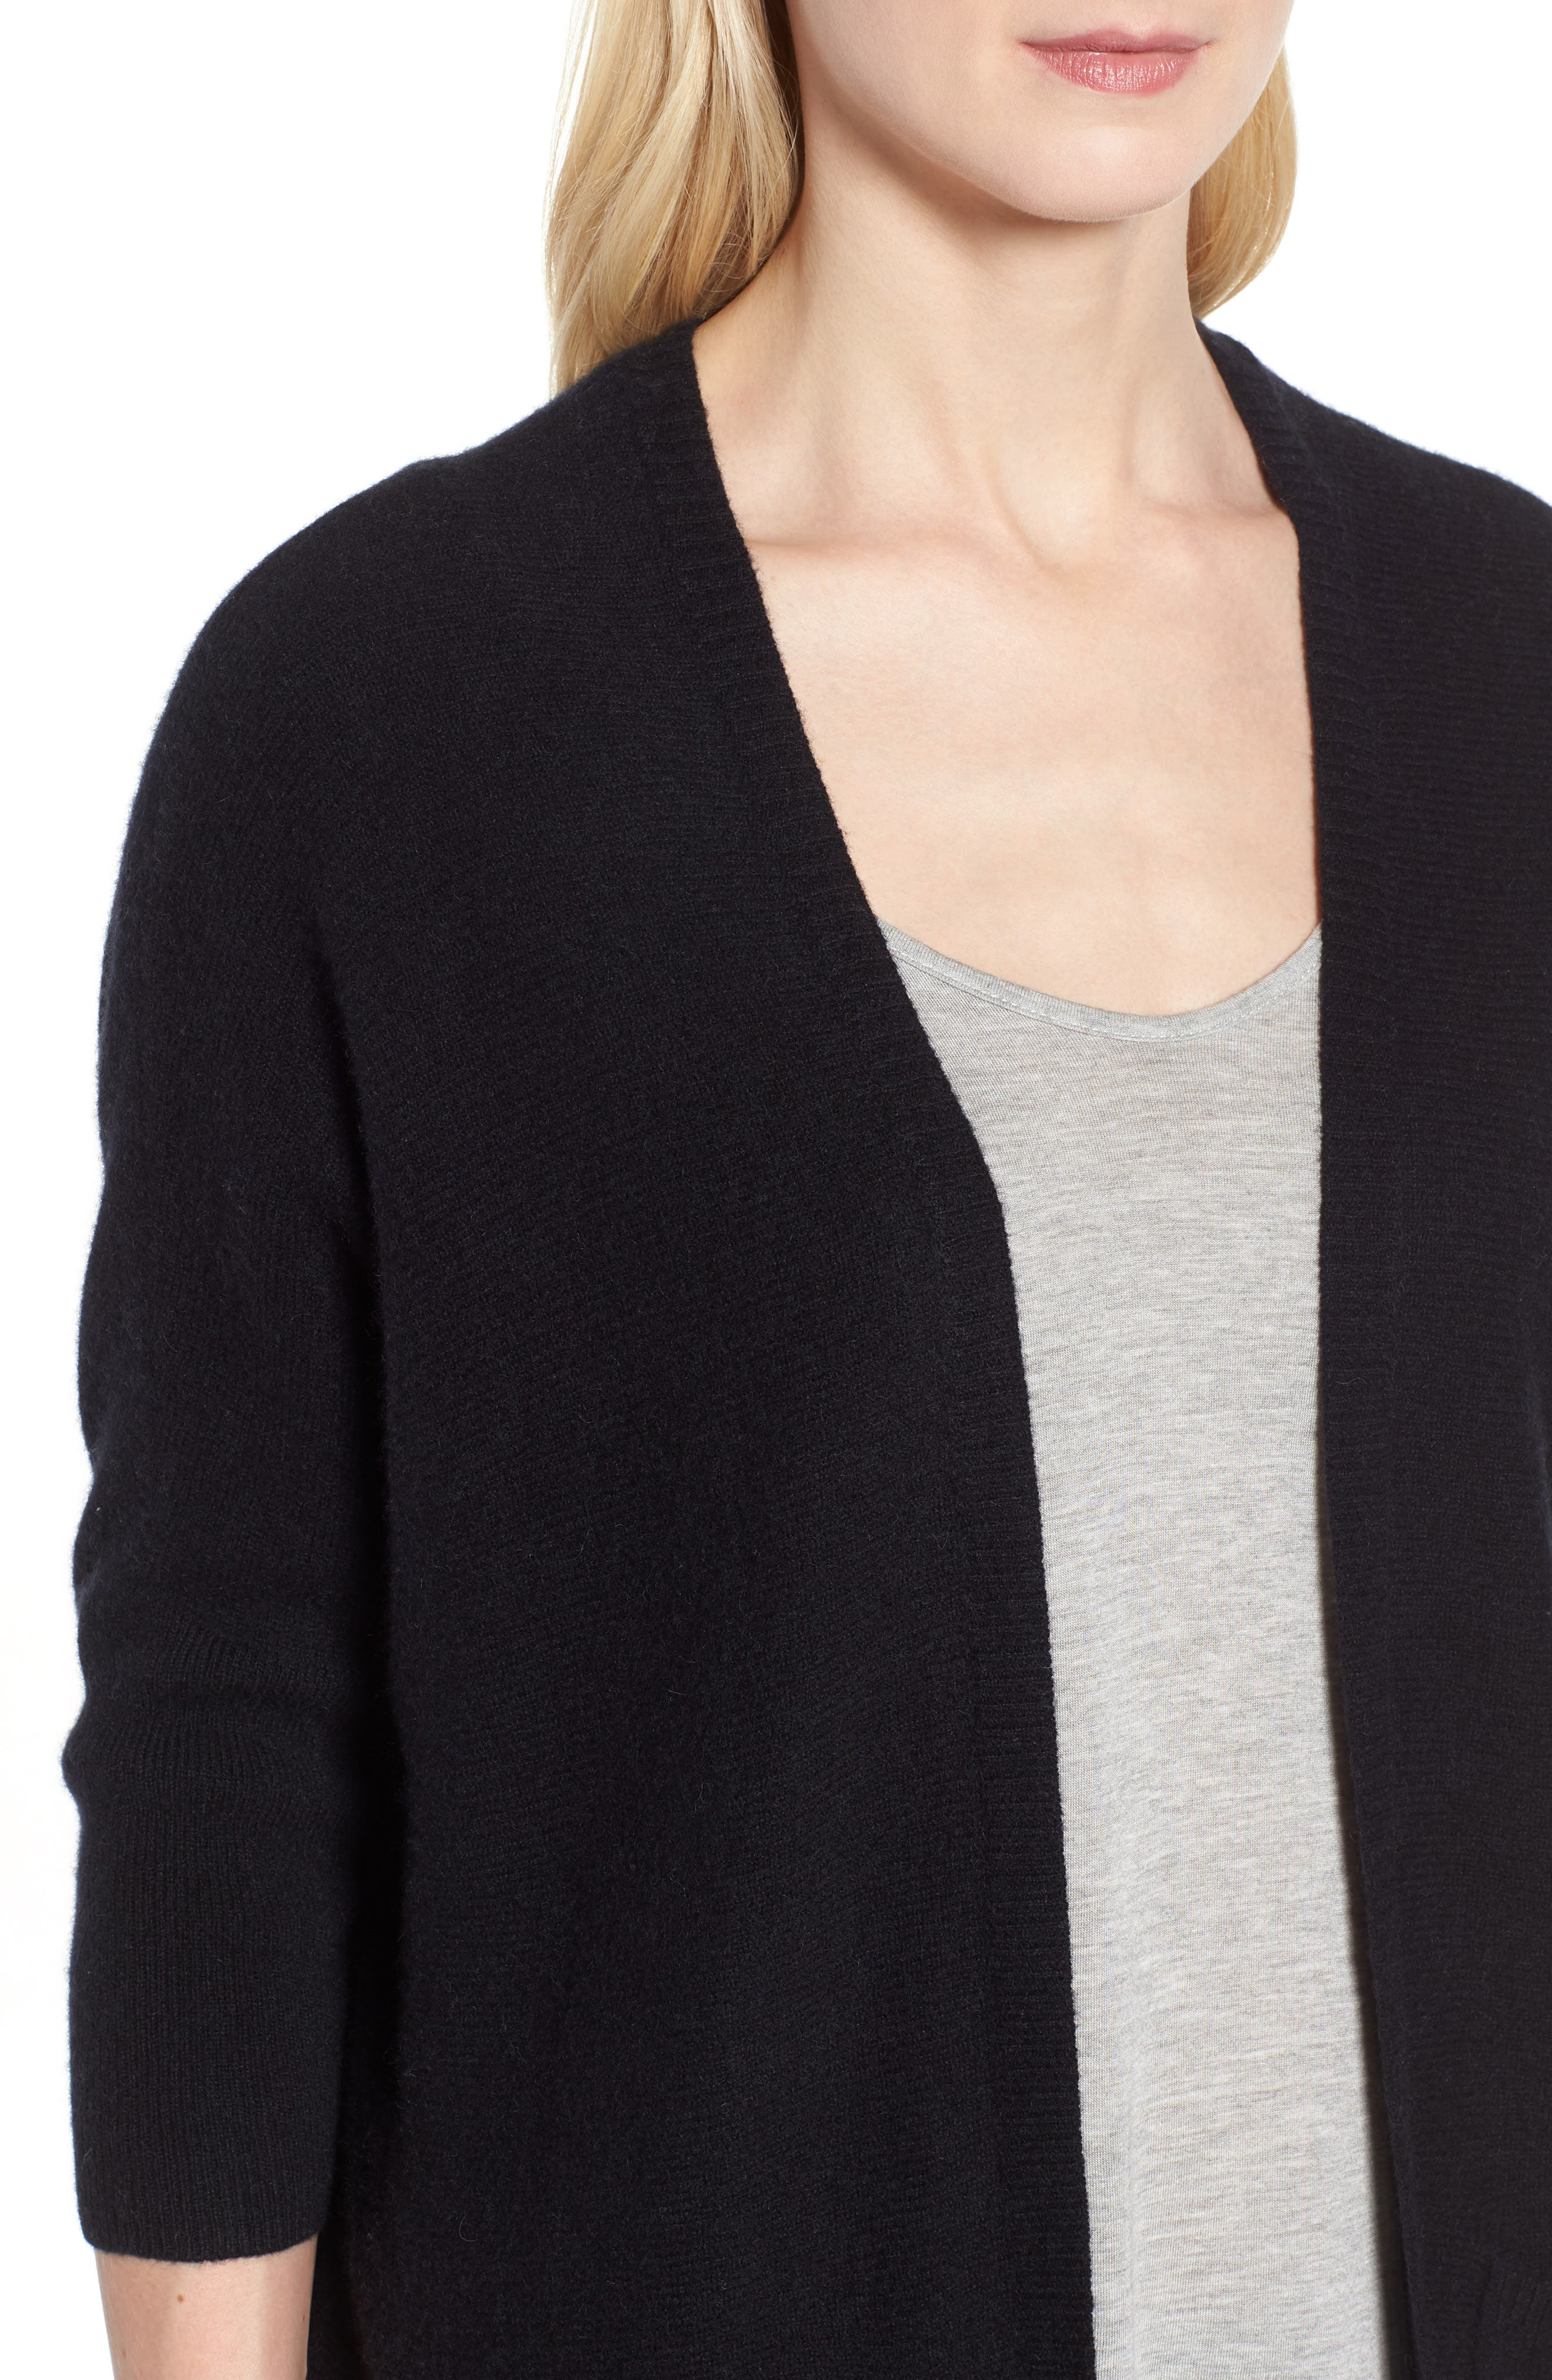 Cashmere Cardigan,                             Alternate thumbnail 4, color,                             BLACK